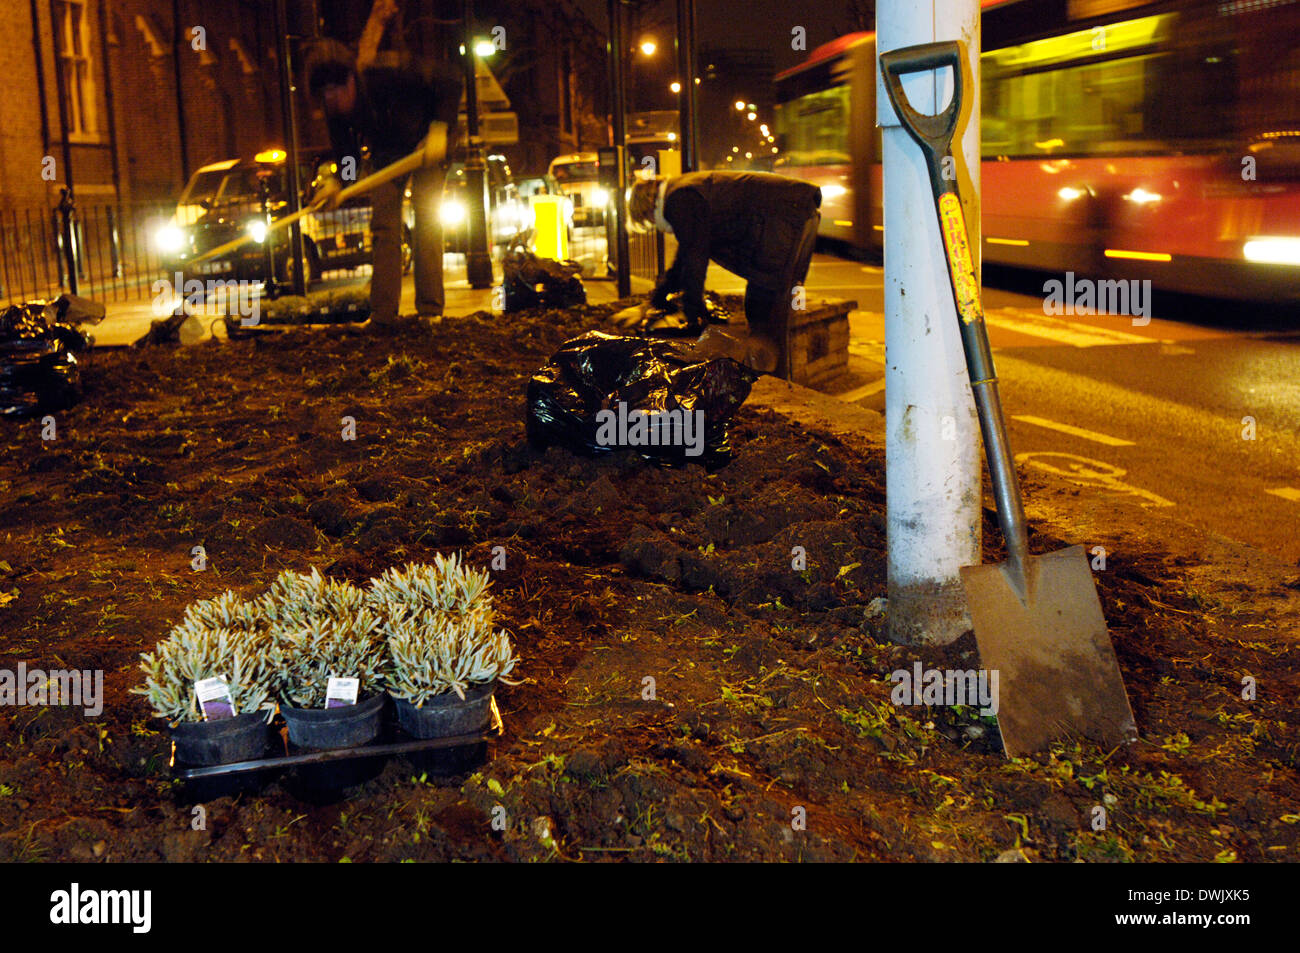 Guerrilla Gardening Stock Photos & Guerrilla Gardening Stock Images ...